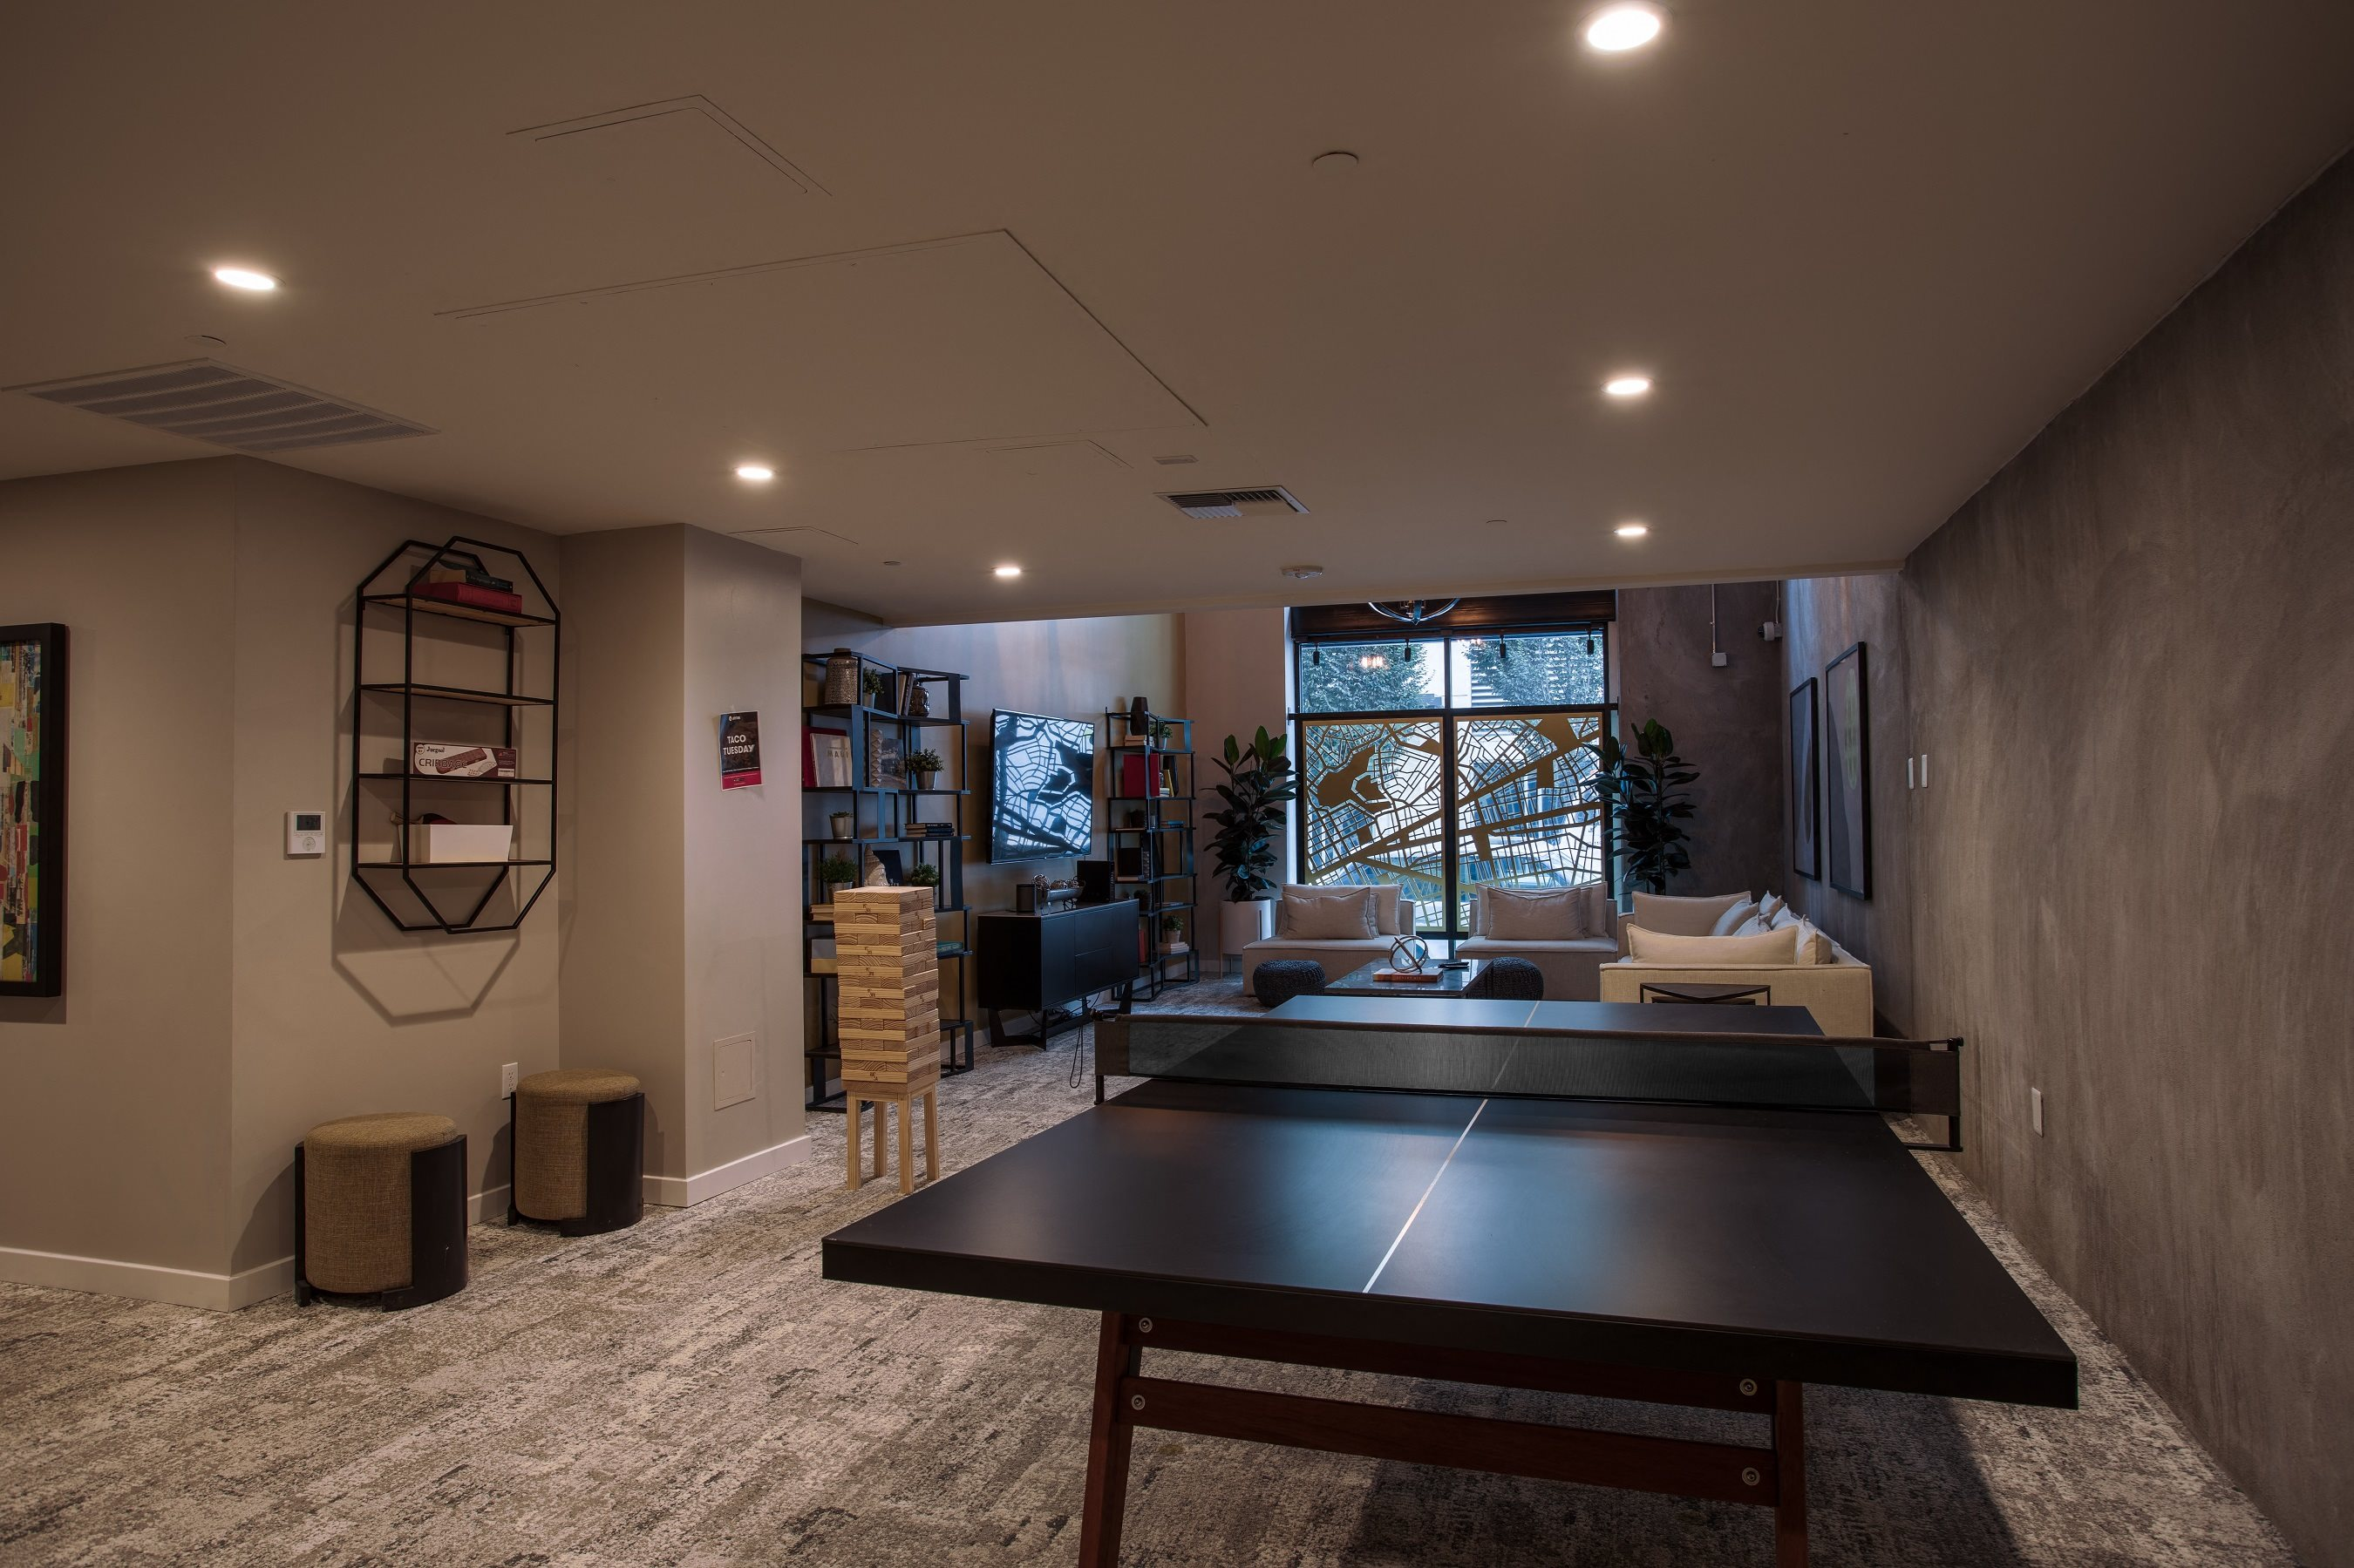 Apartments in Oakland CA - Residential Social Lounge Featuring Plenty of Exciting Amenities Such As Ping Pong Table